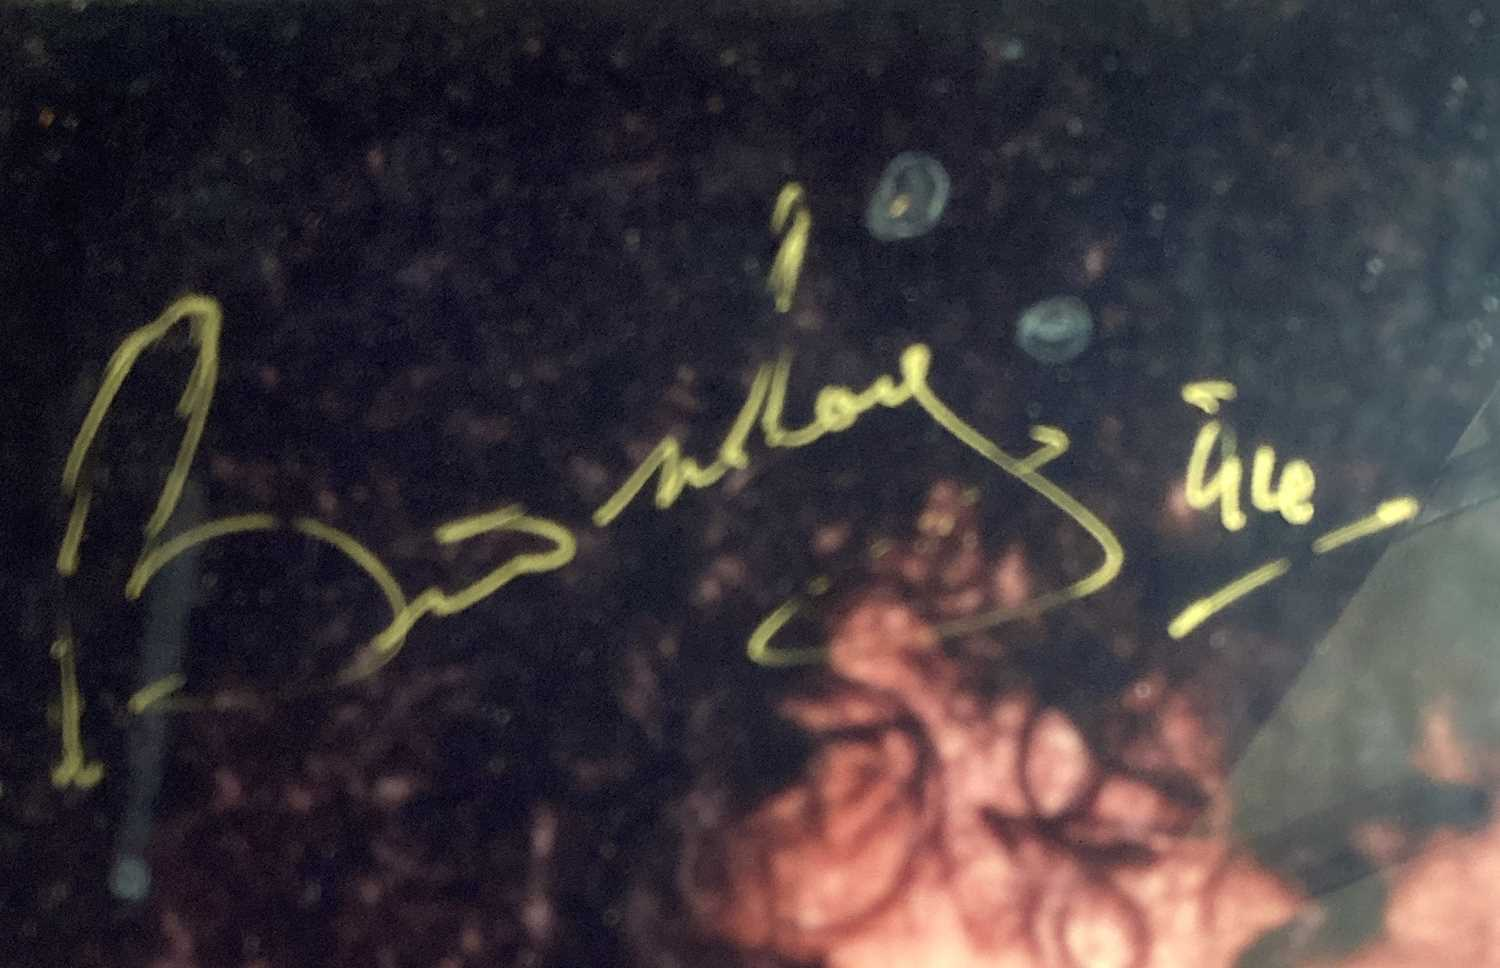 QUEEN SIGNED ITEMS. - Image 3 of 7